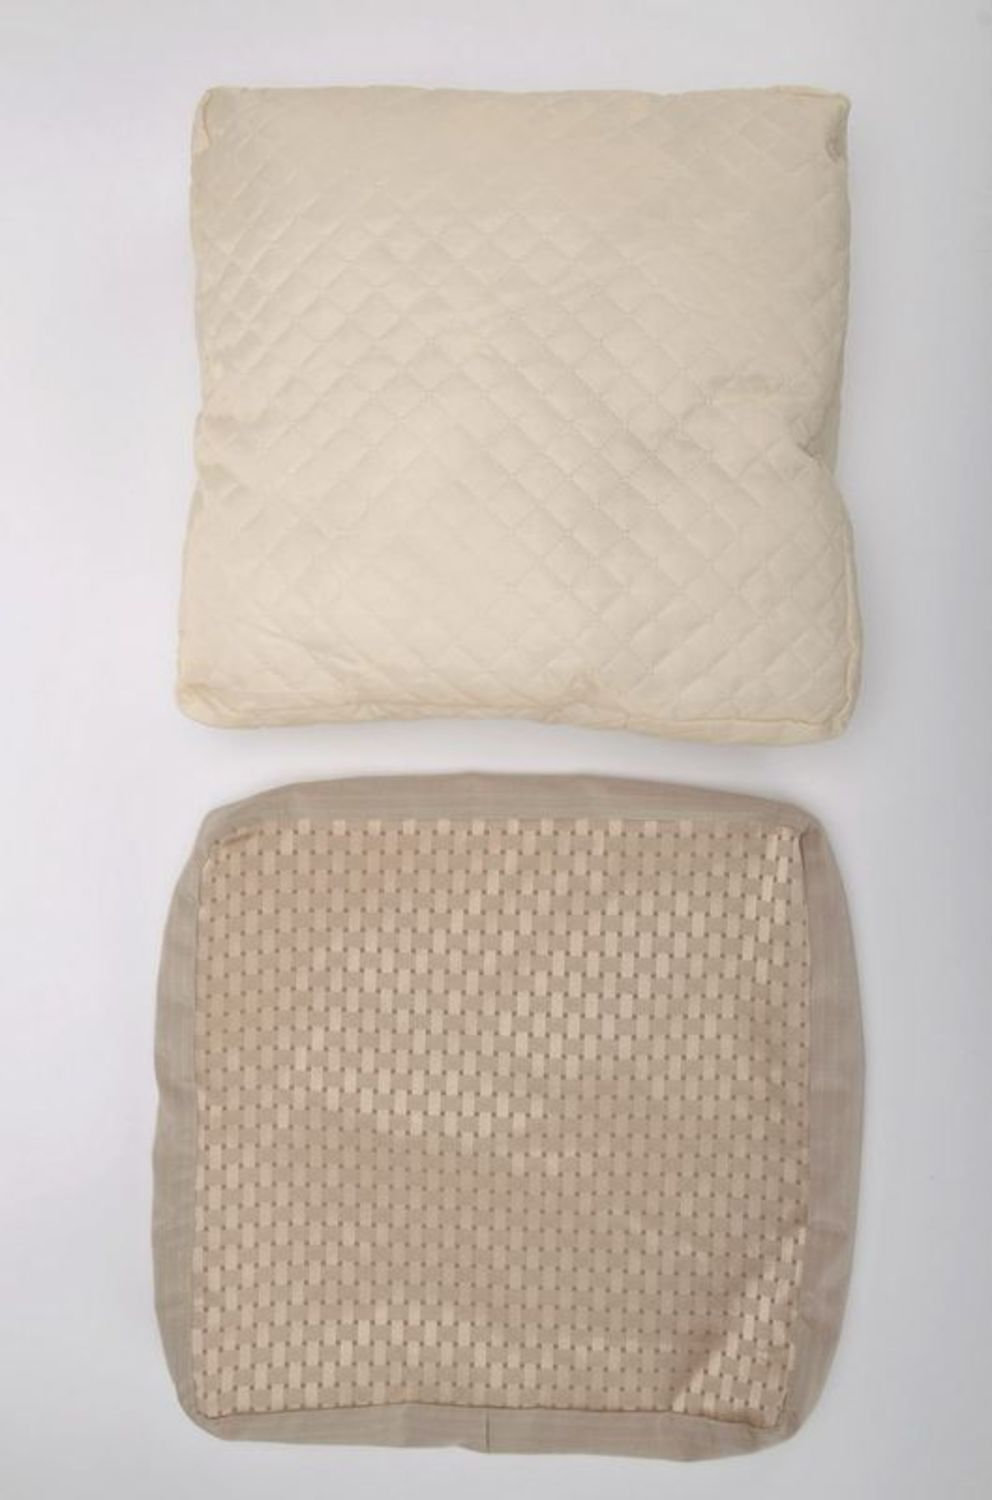 Pillow made from cotton and polyester with lace photo 4